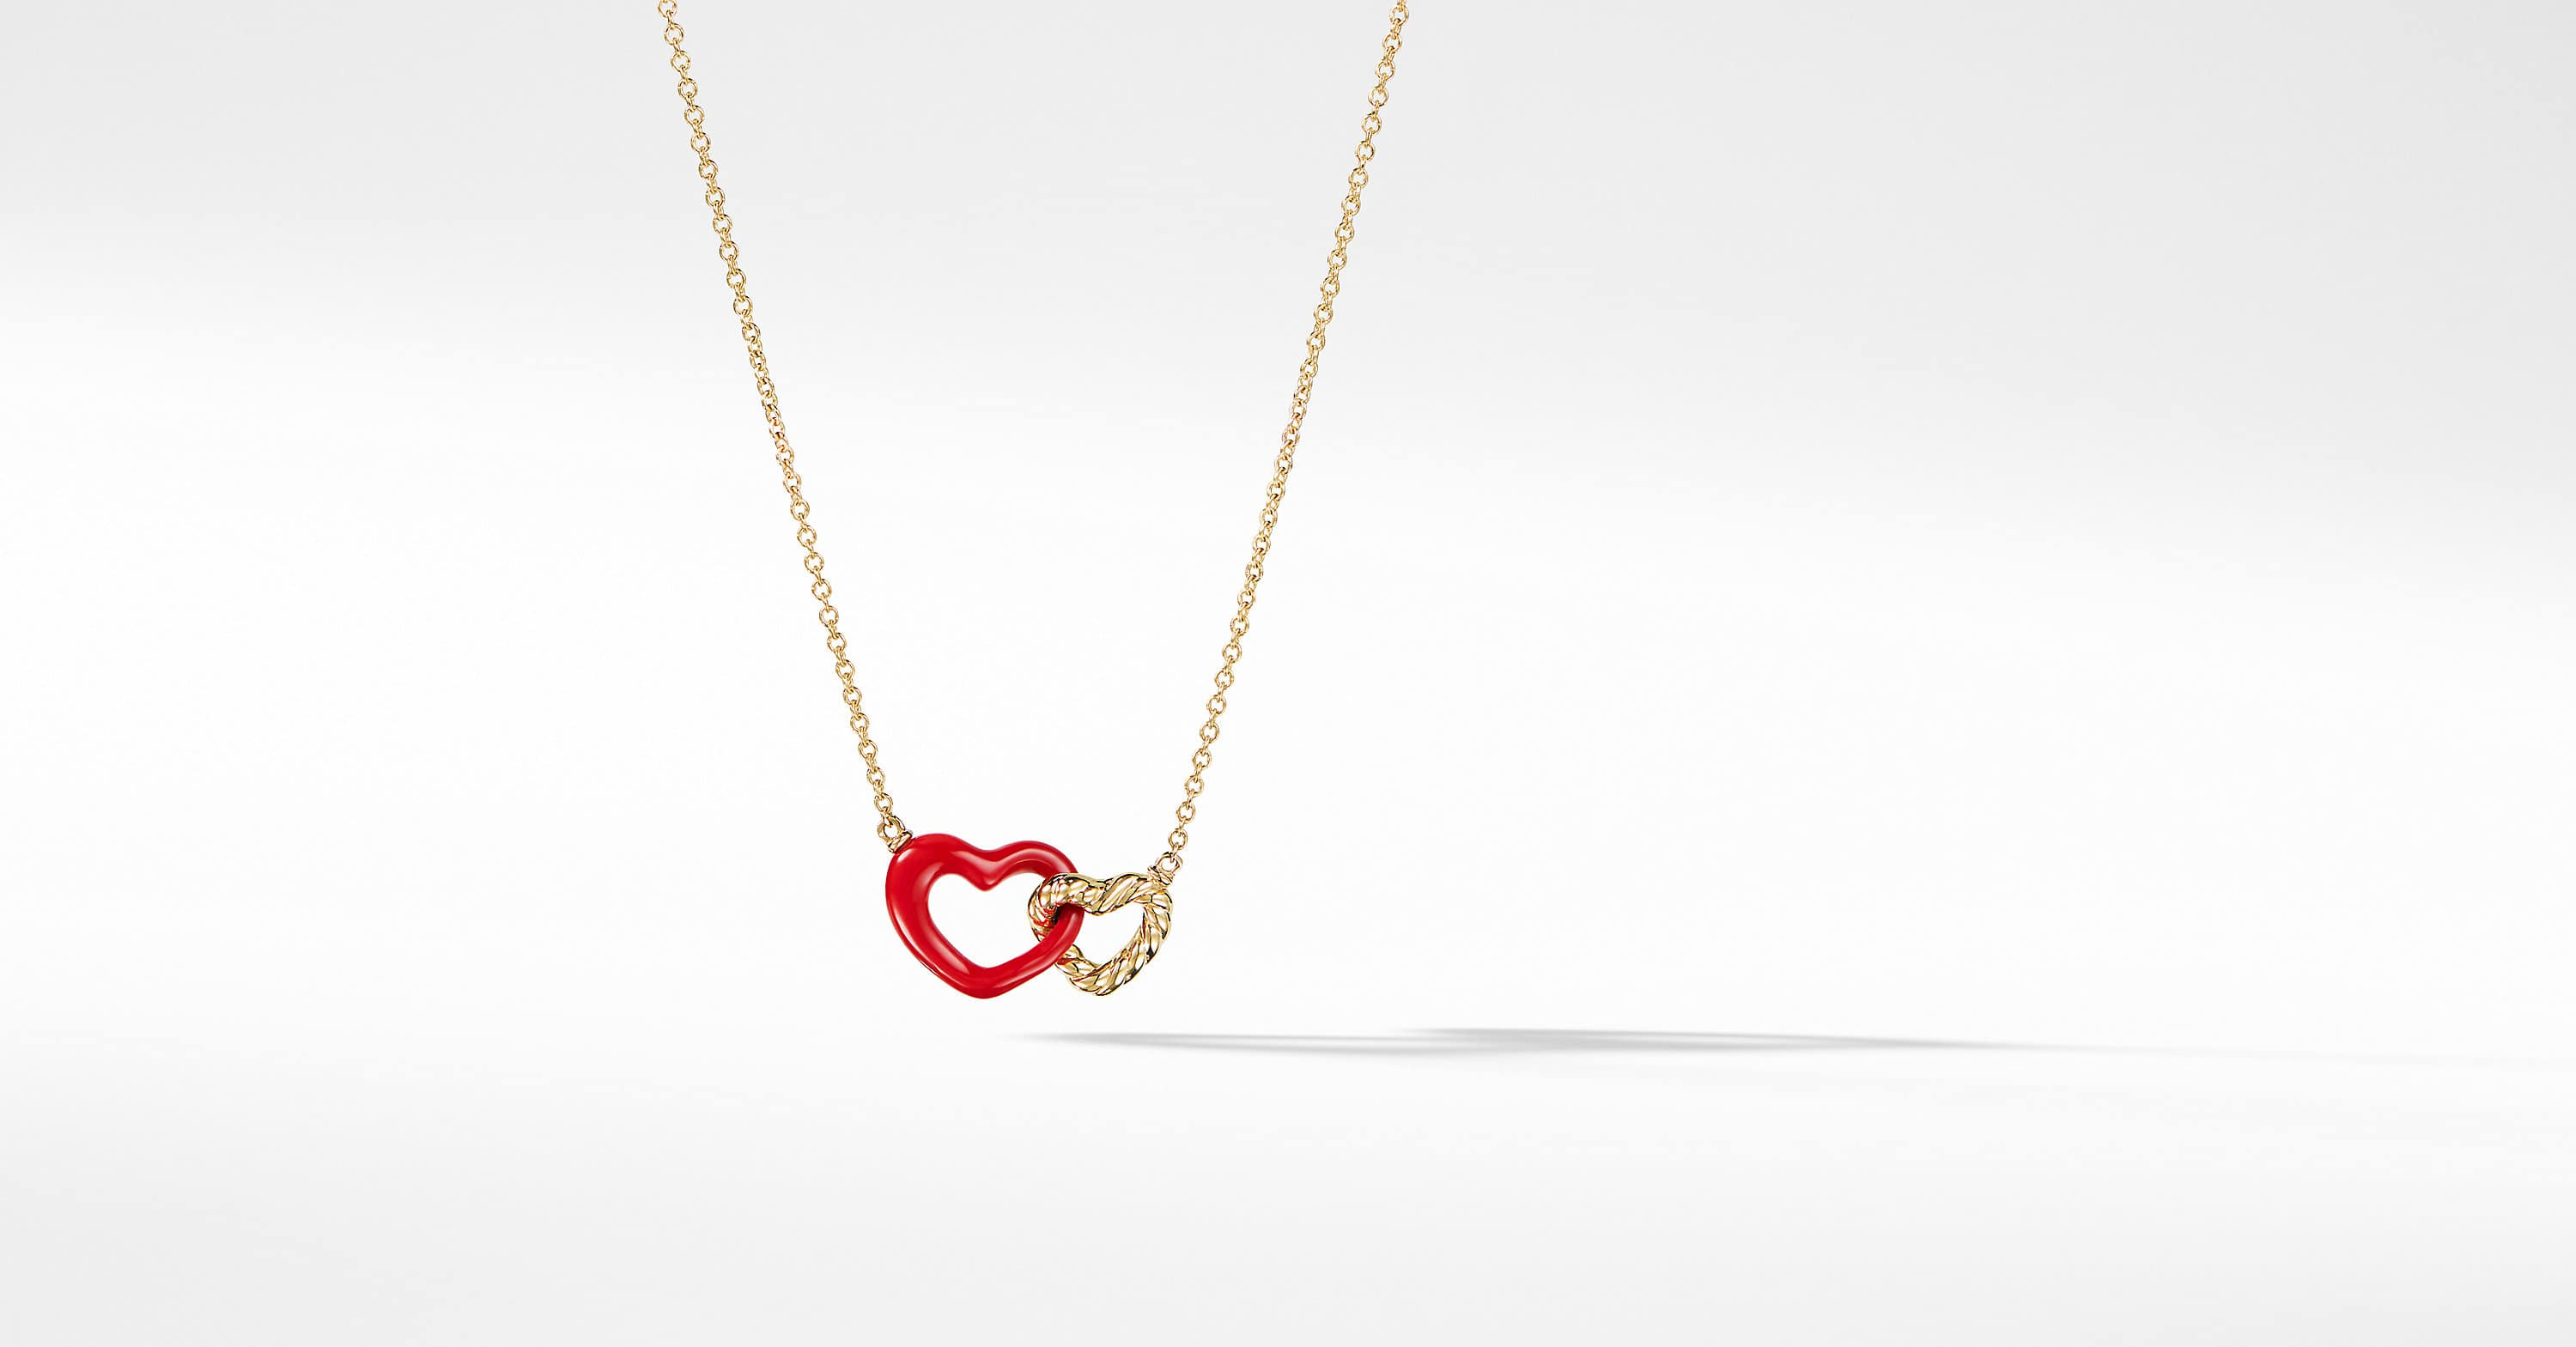 Double Heart Pendant Necklace with 18K Gold